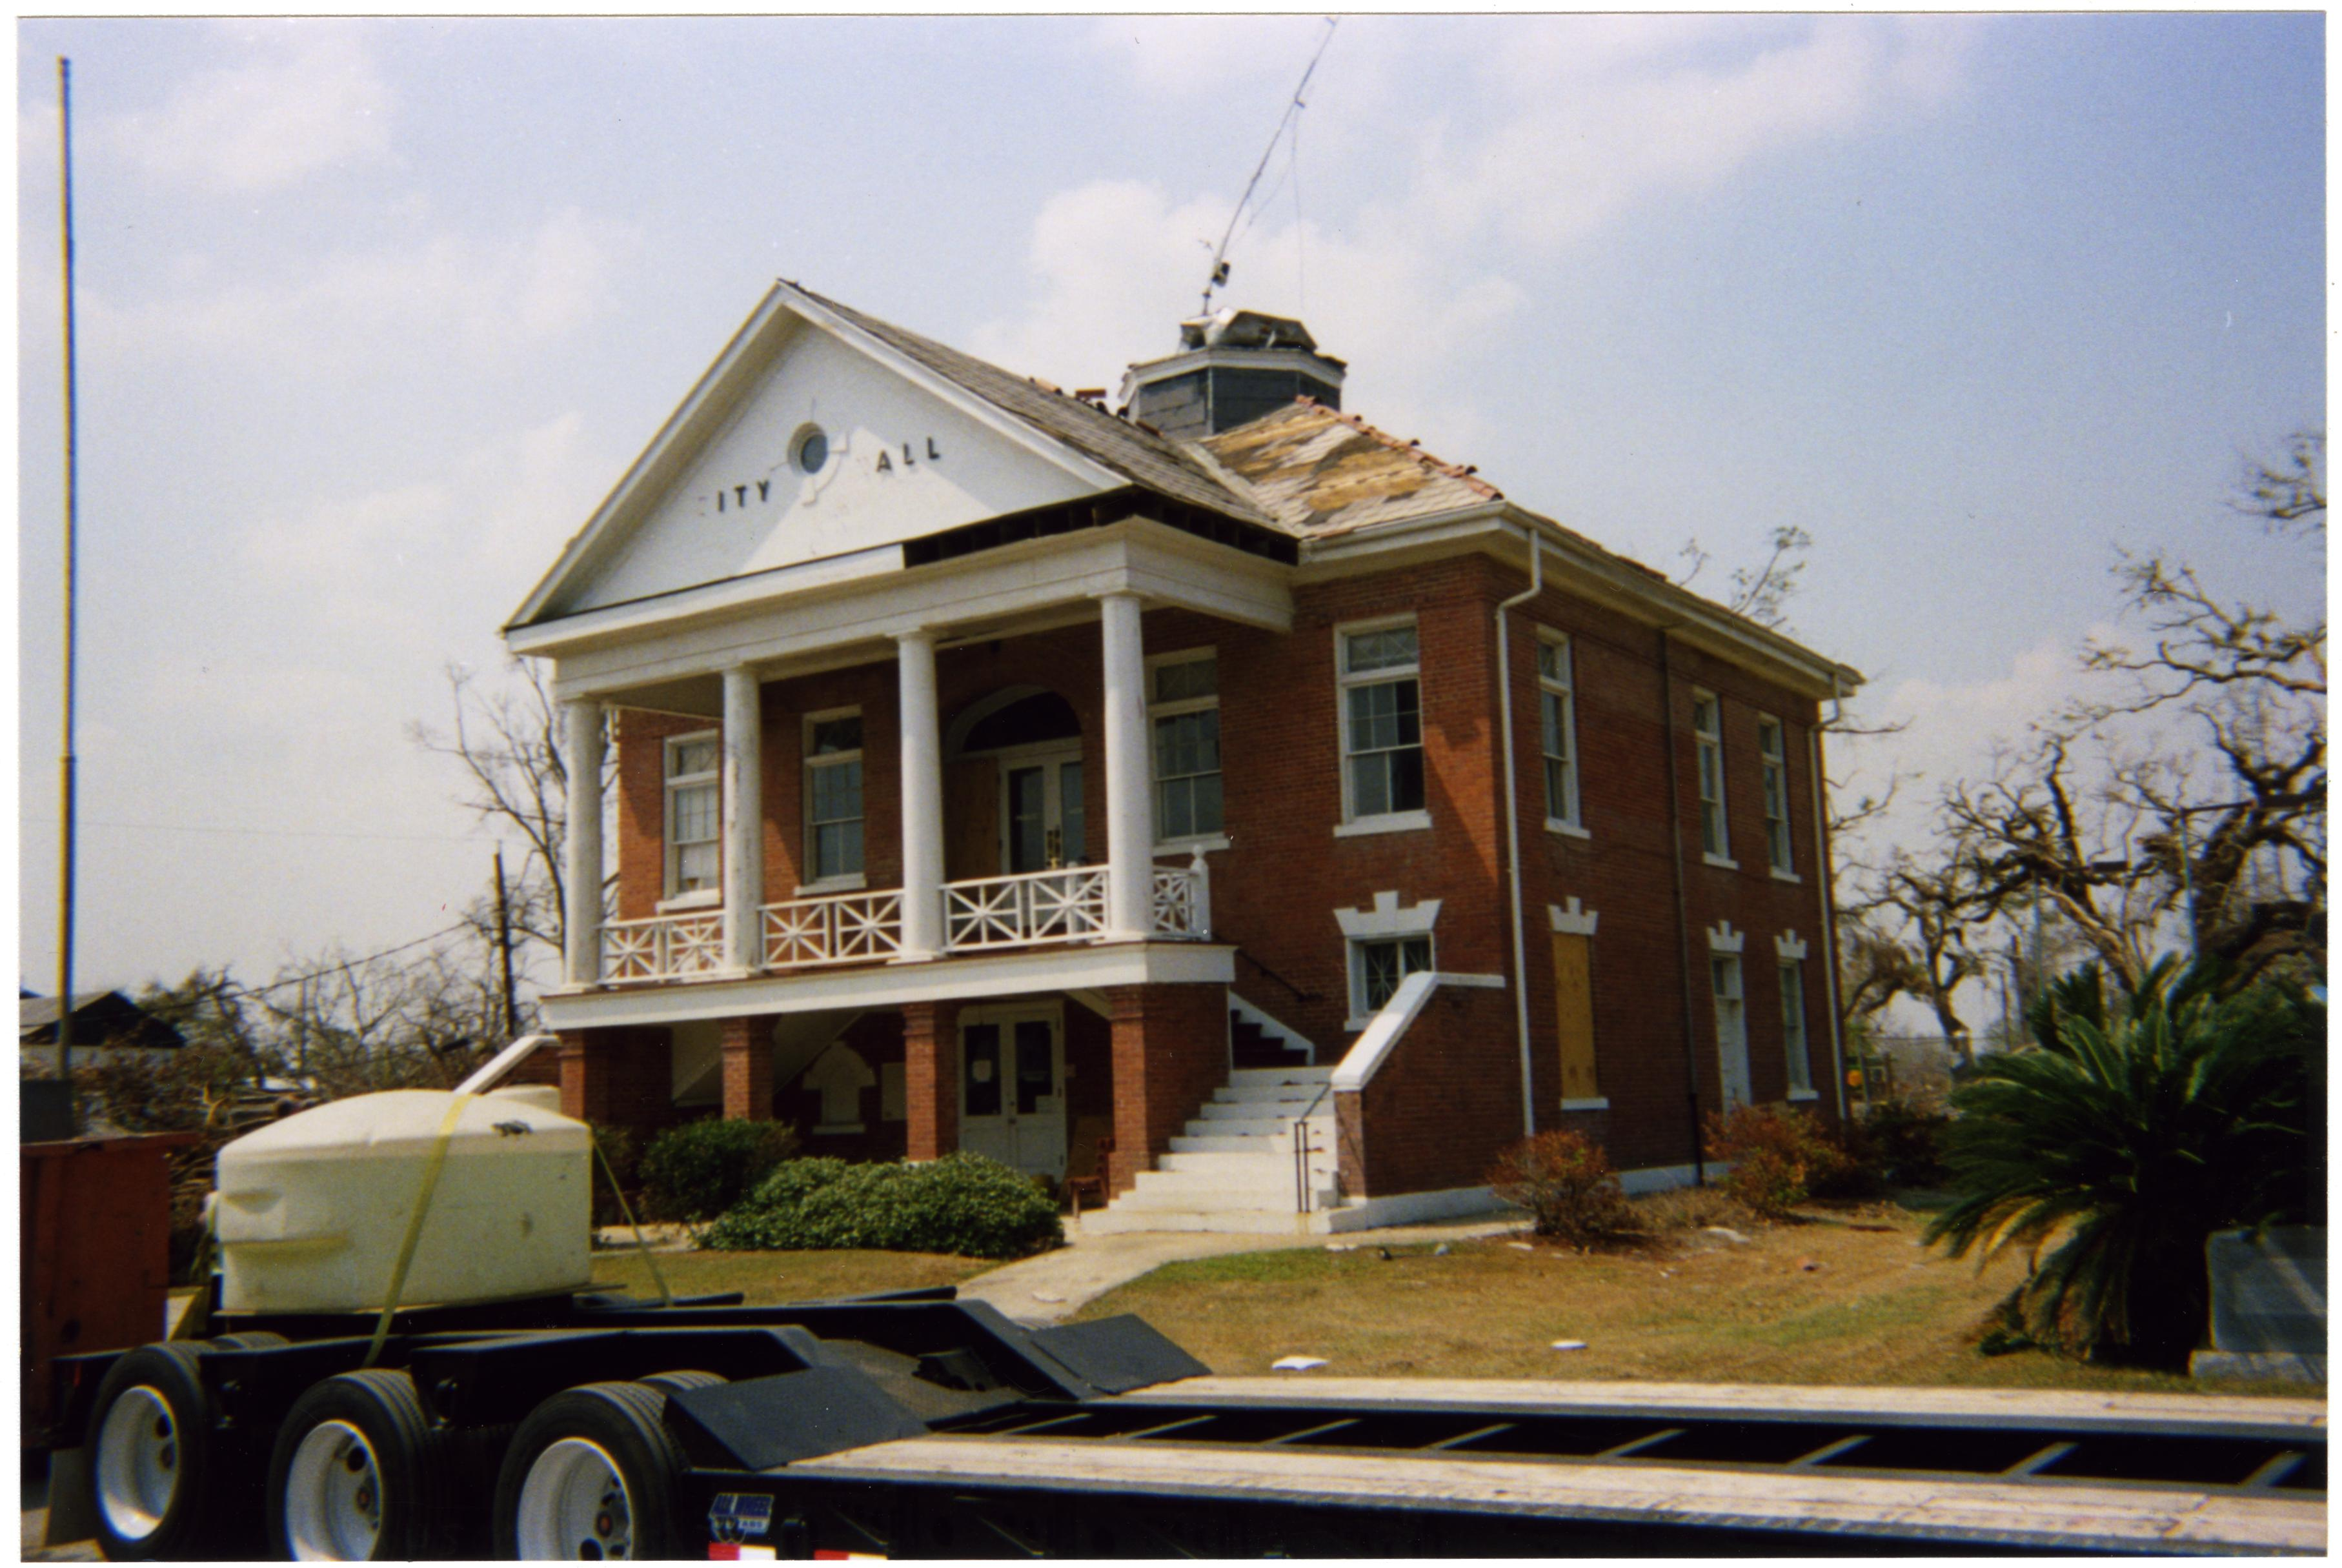 Bay St. Louis Mississippi city hall haunted ghost Hurricane Katrina damage